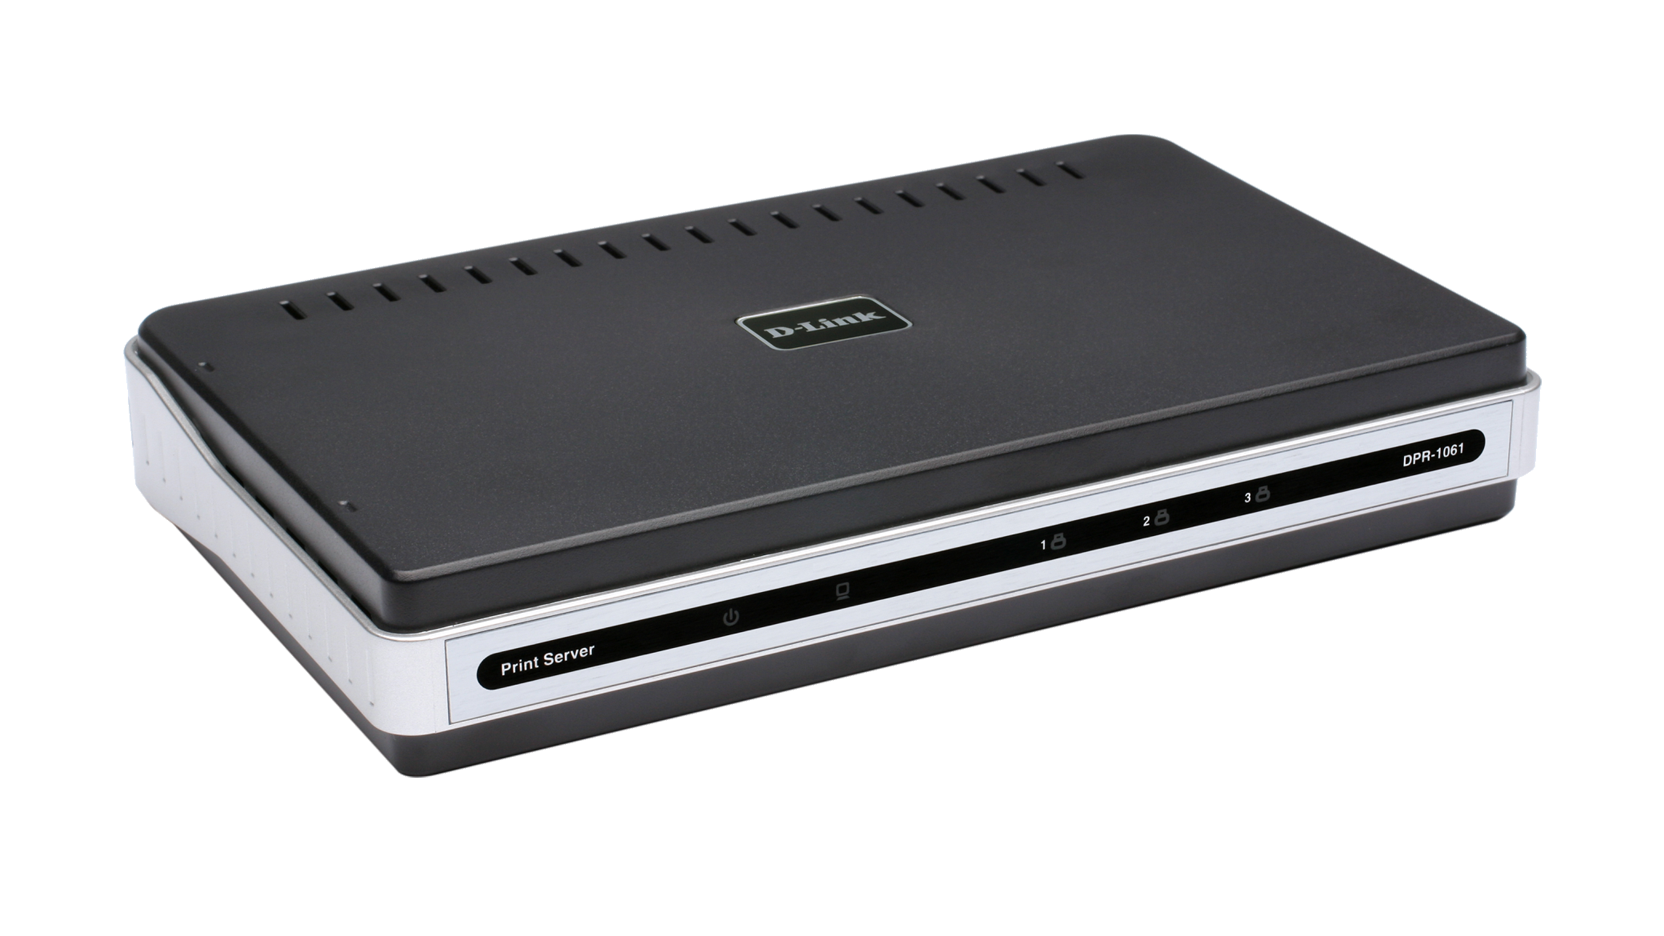 Dp-301p+ fast ethernet print server | d-link.